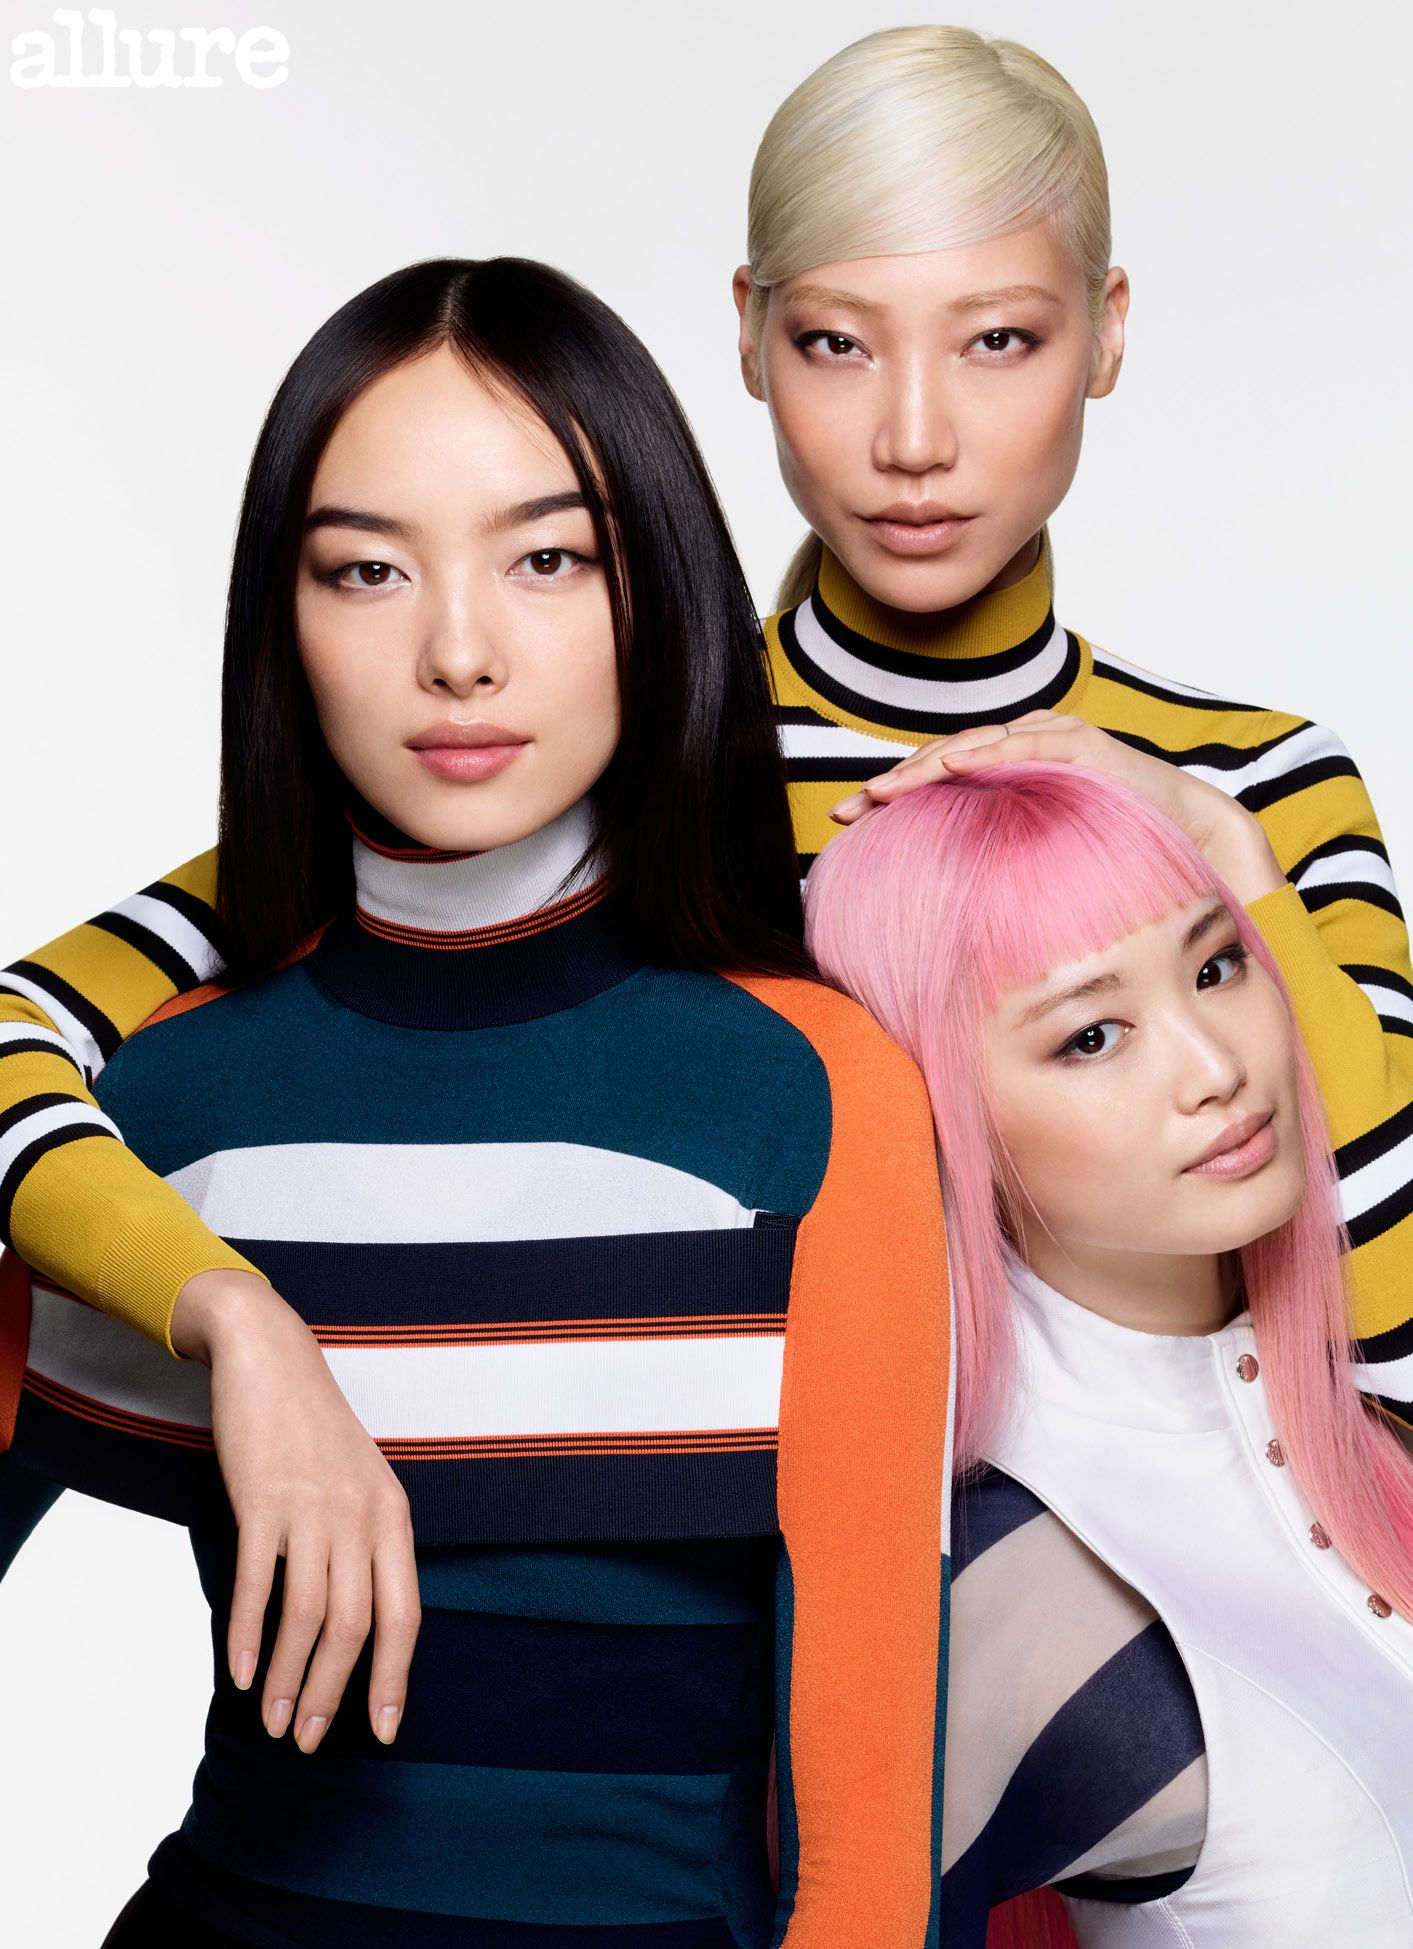 In a rare move, Allure's cover features three Asian models